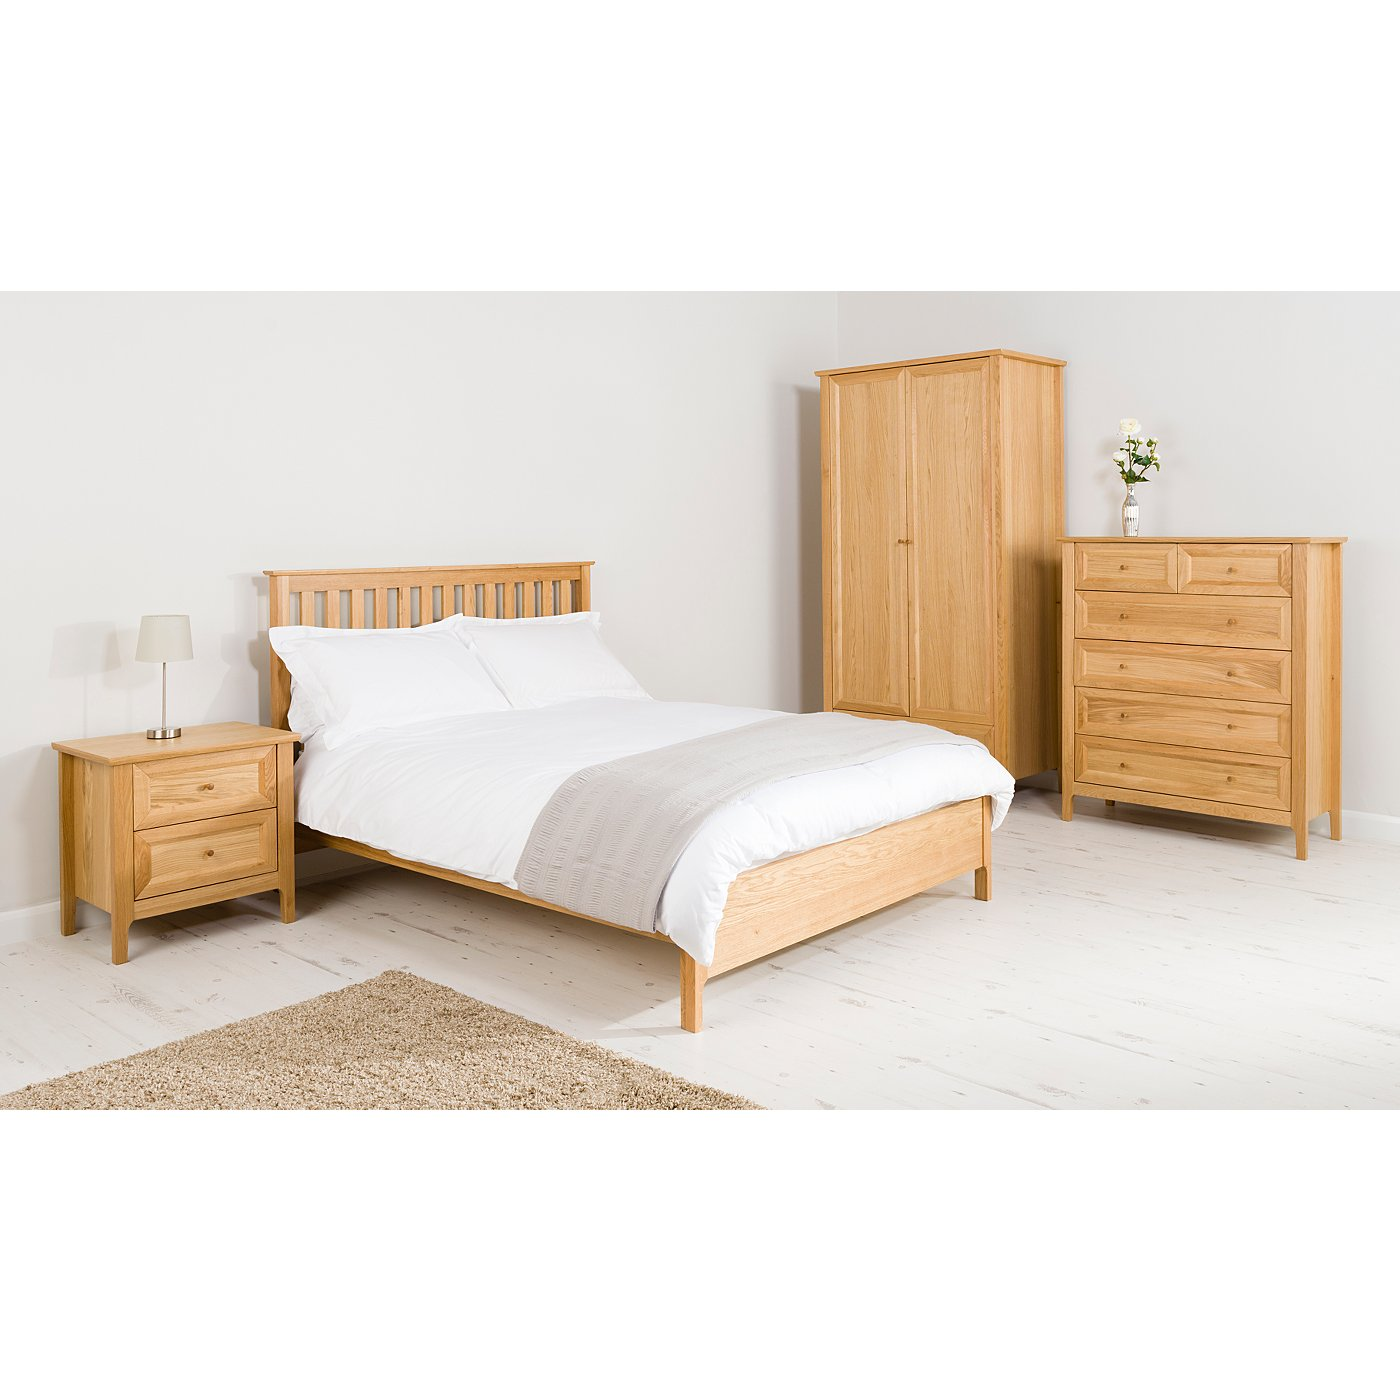 Oak Veneer Bedroom Furniture Uk Home